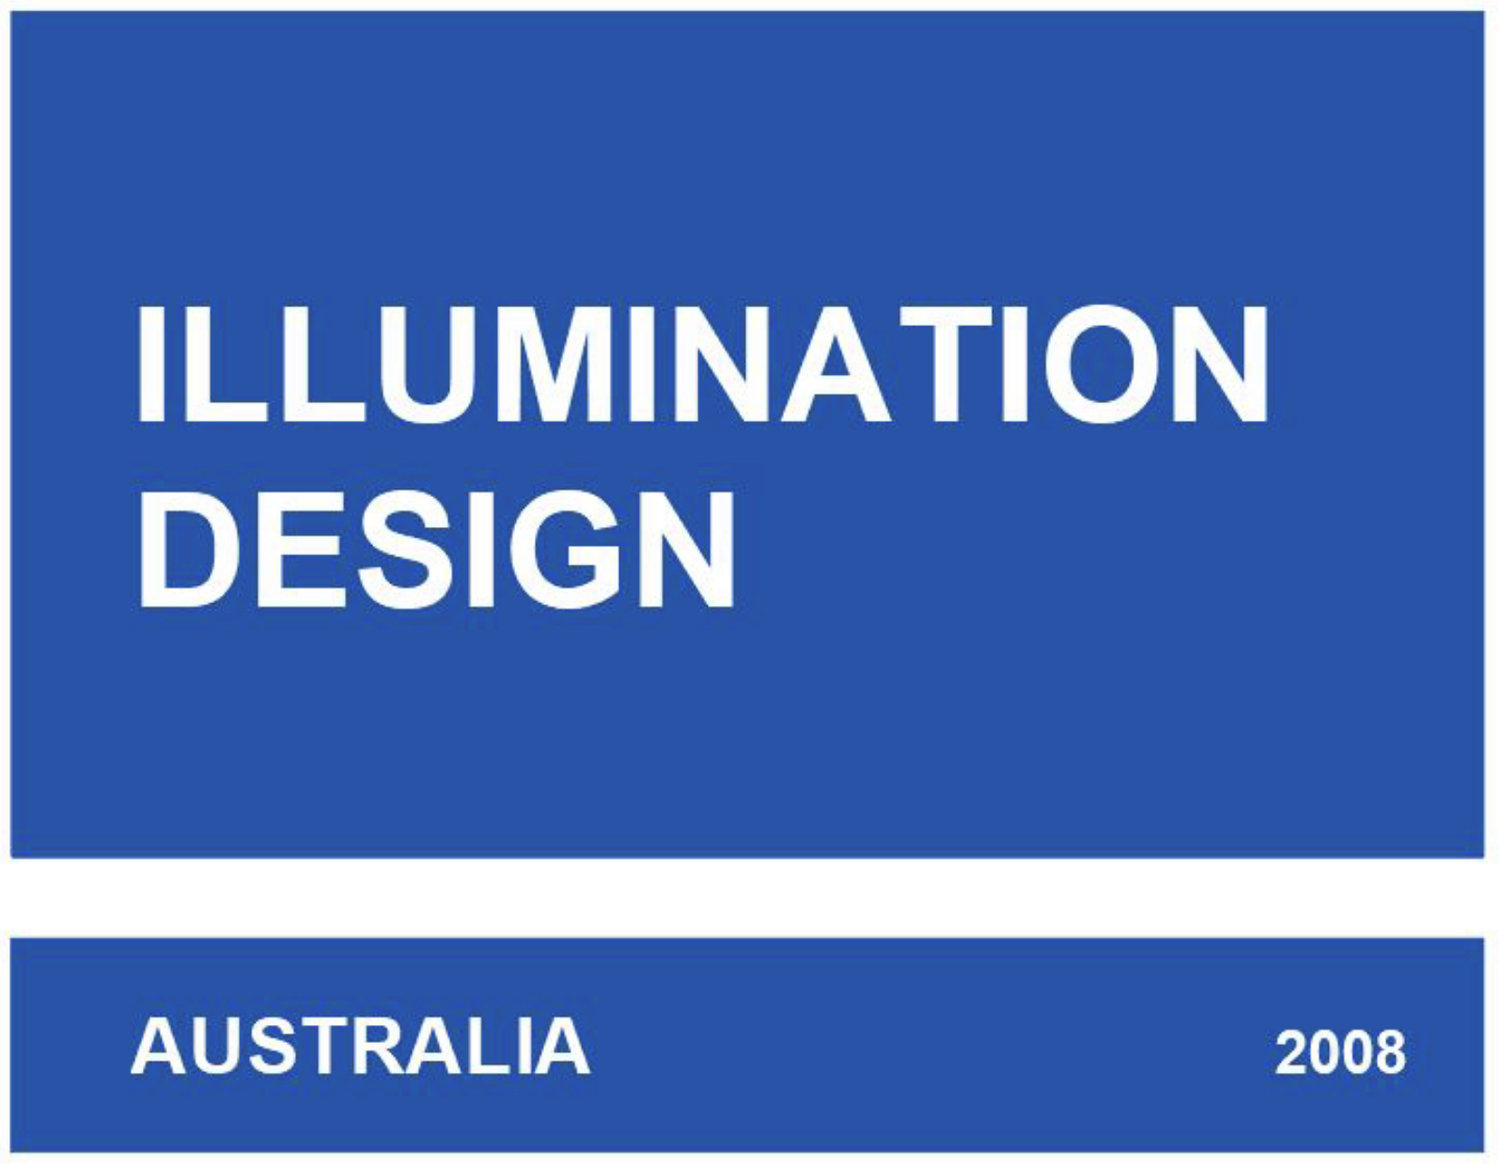 Illumination Design Australia